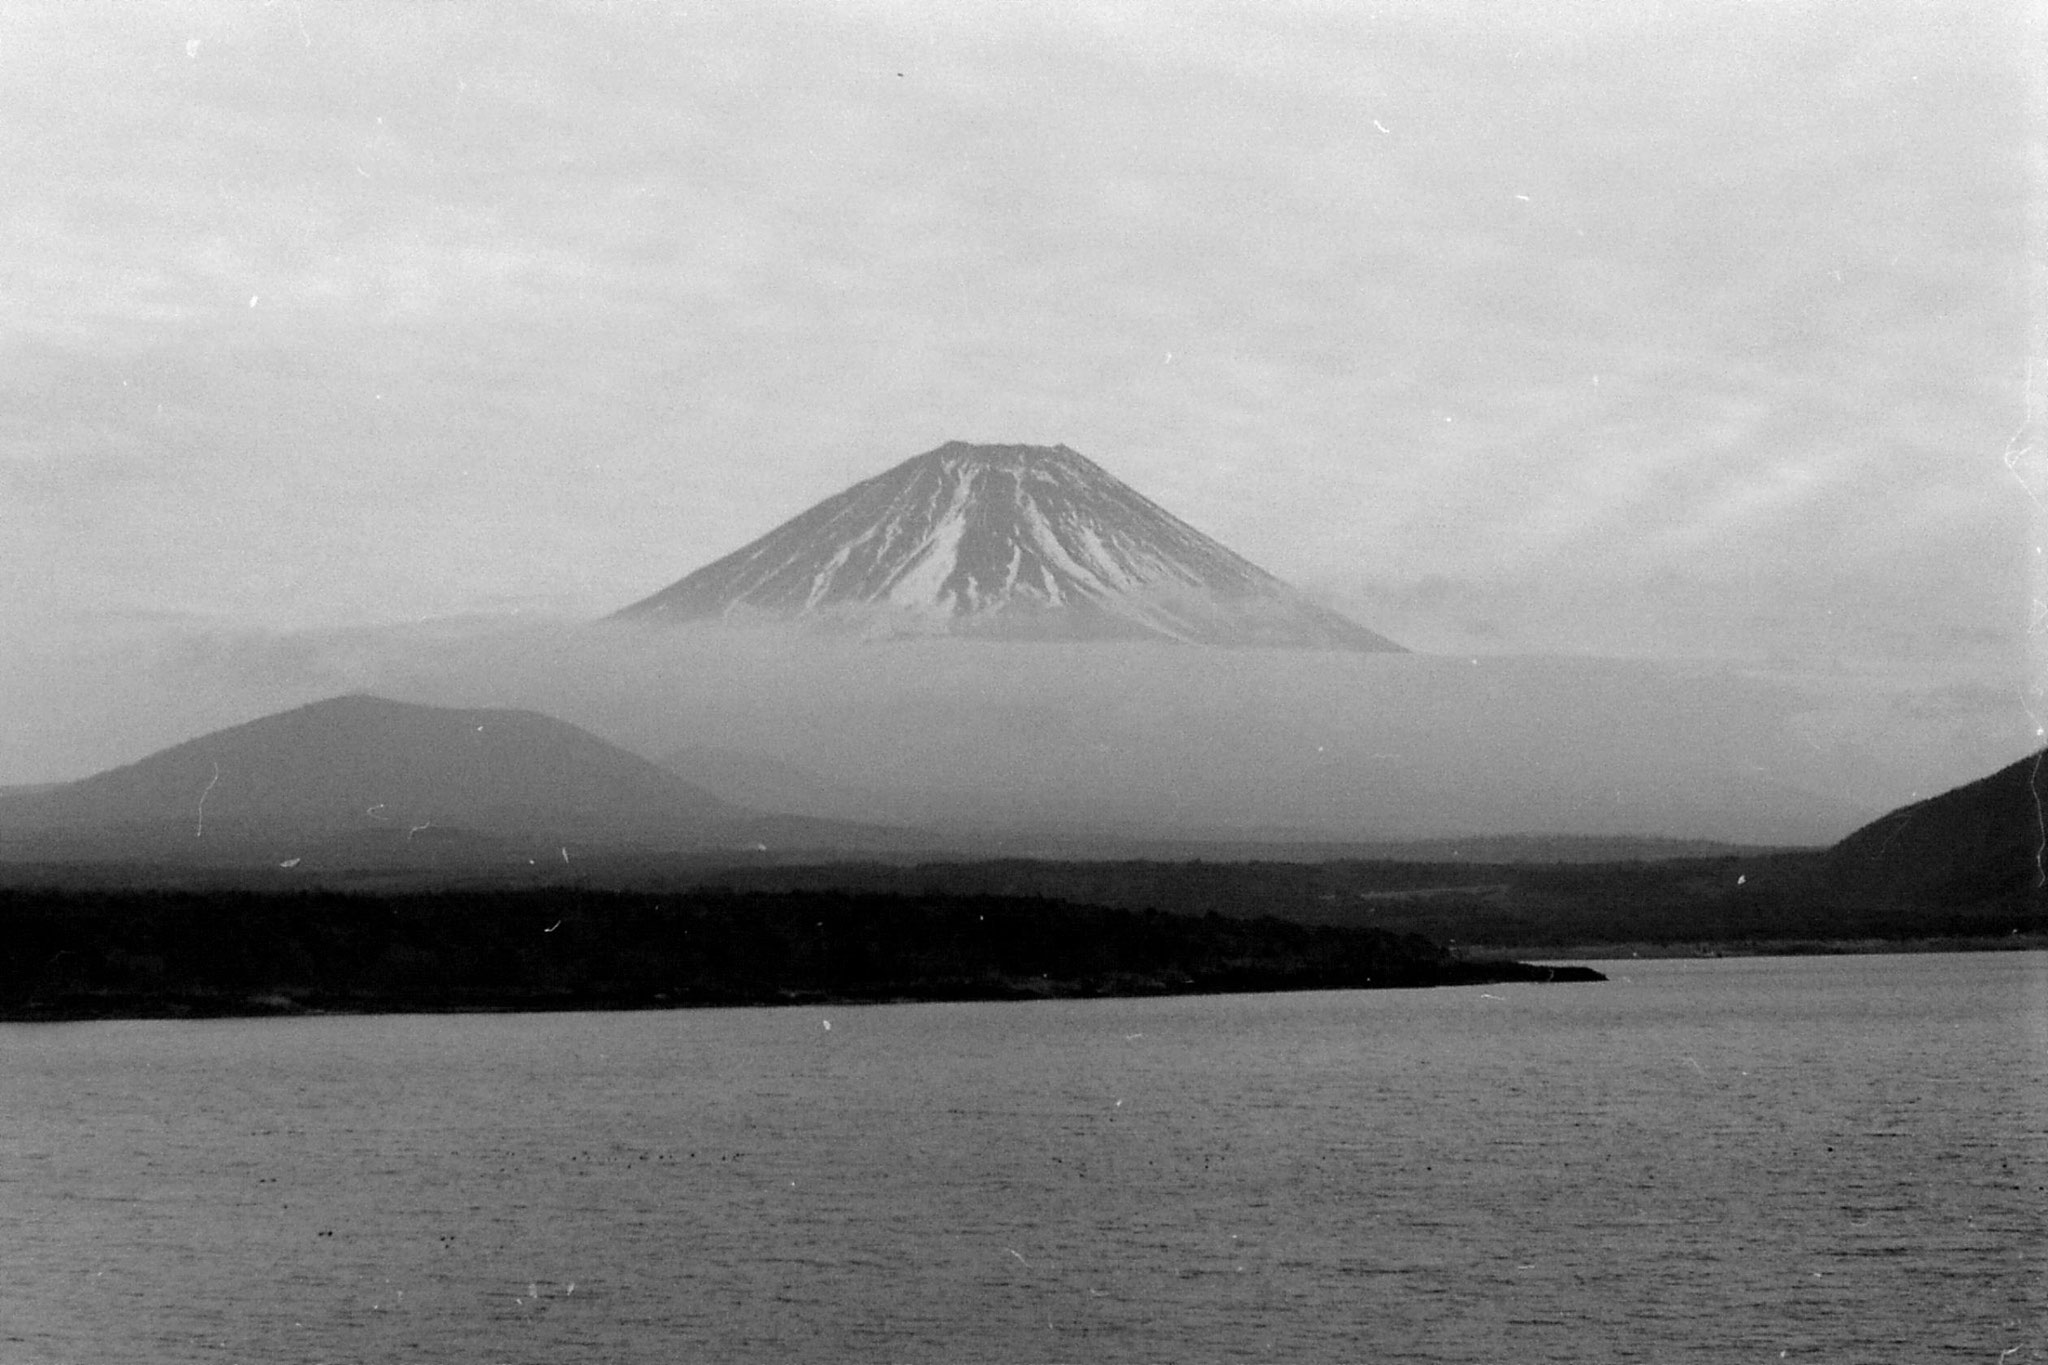 31/12/1988: 21: Fuji and Lake Motosuko